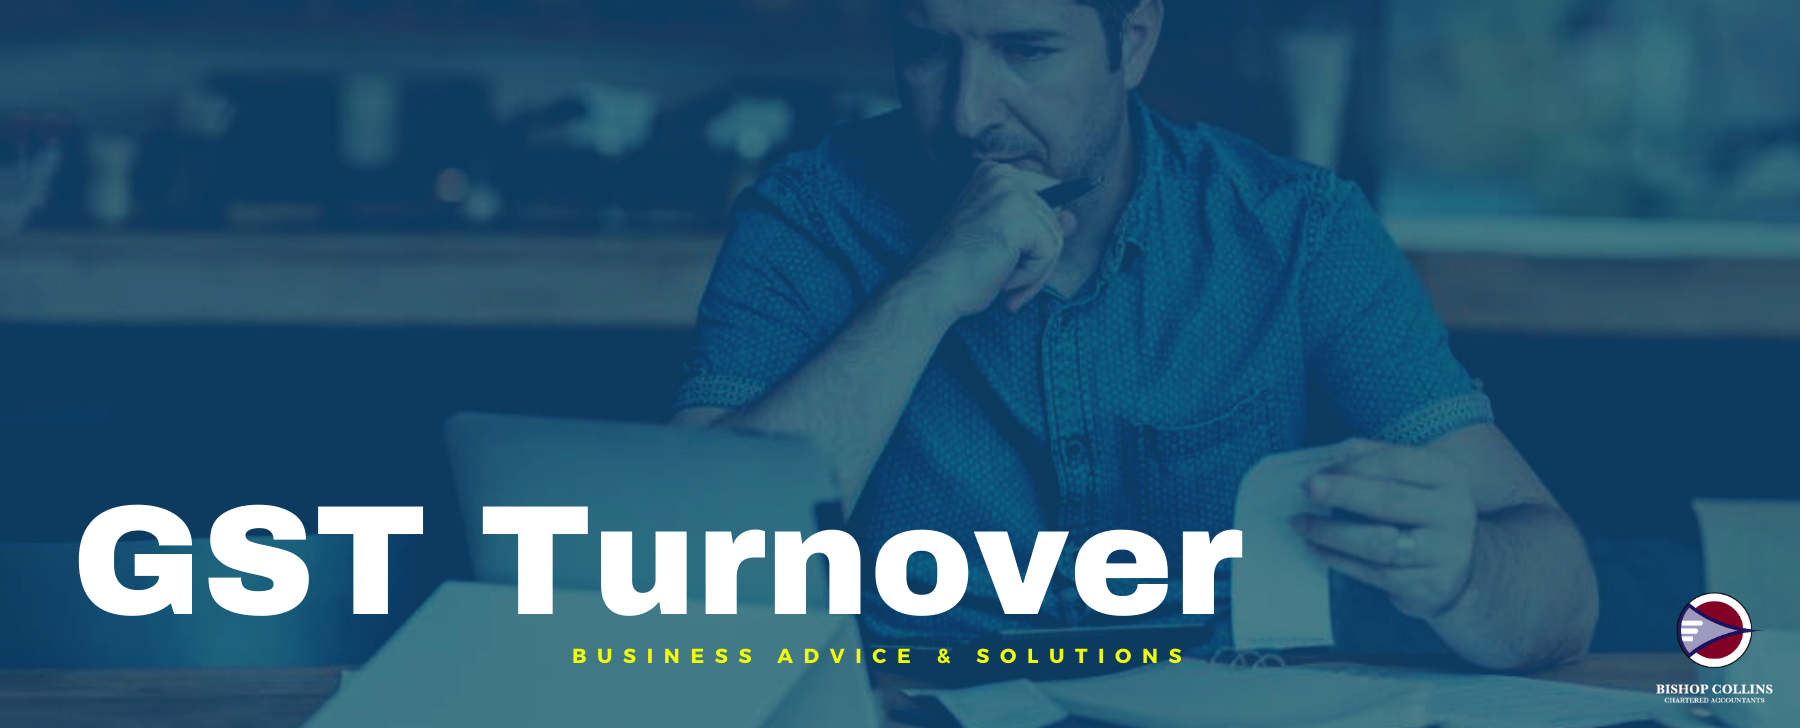 What is GST Turnover business man at a table with computer and figures on paper